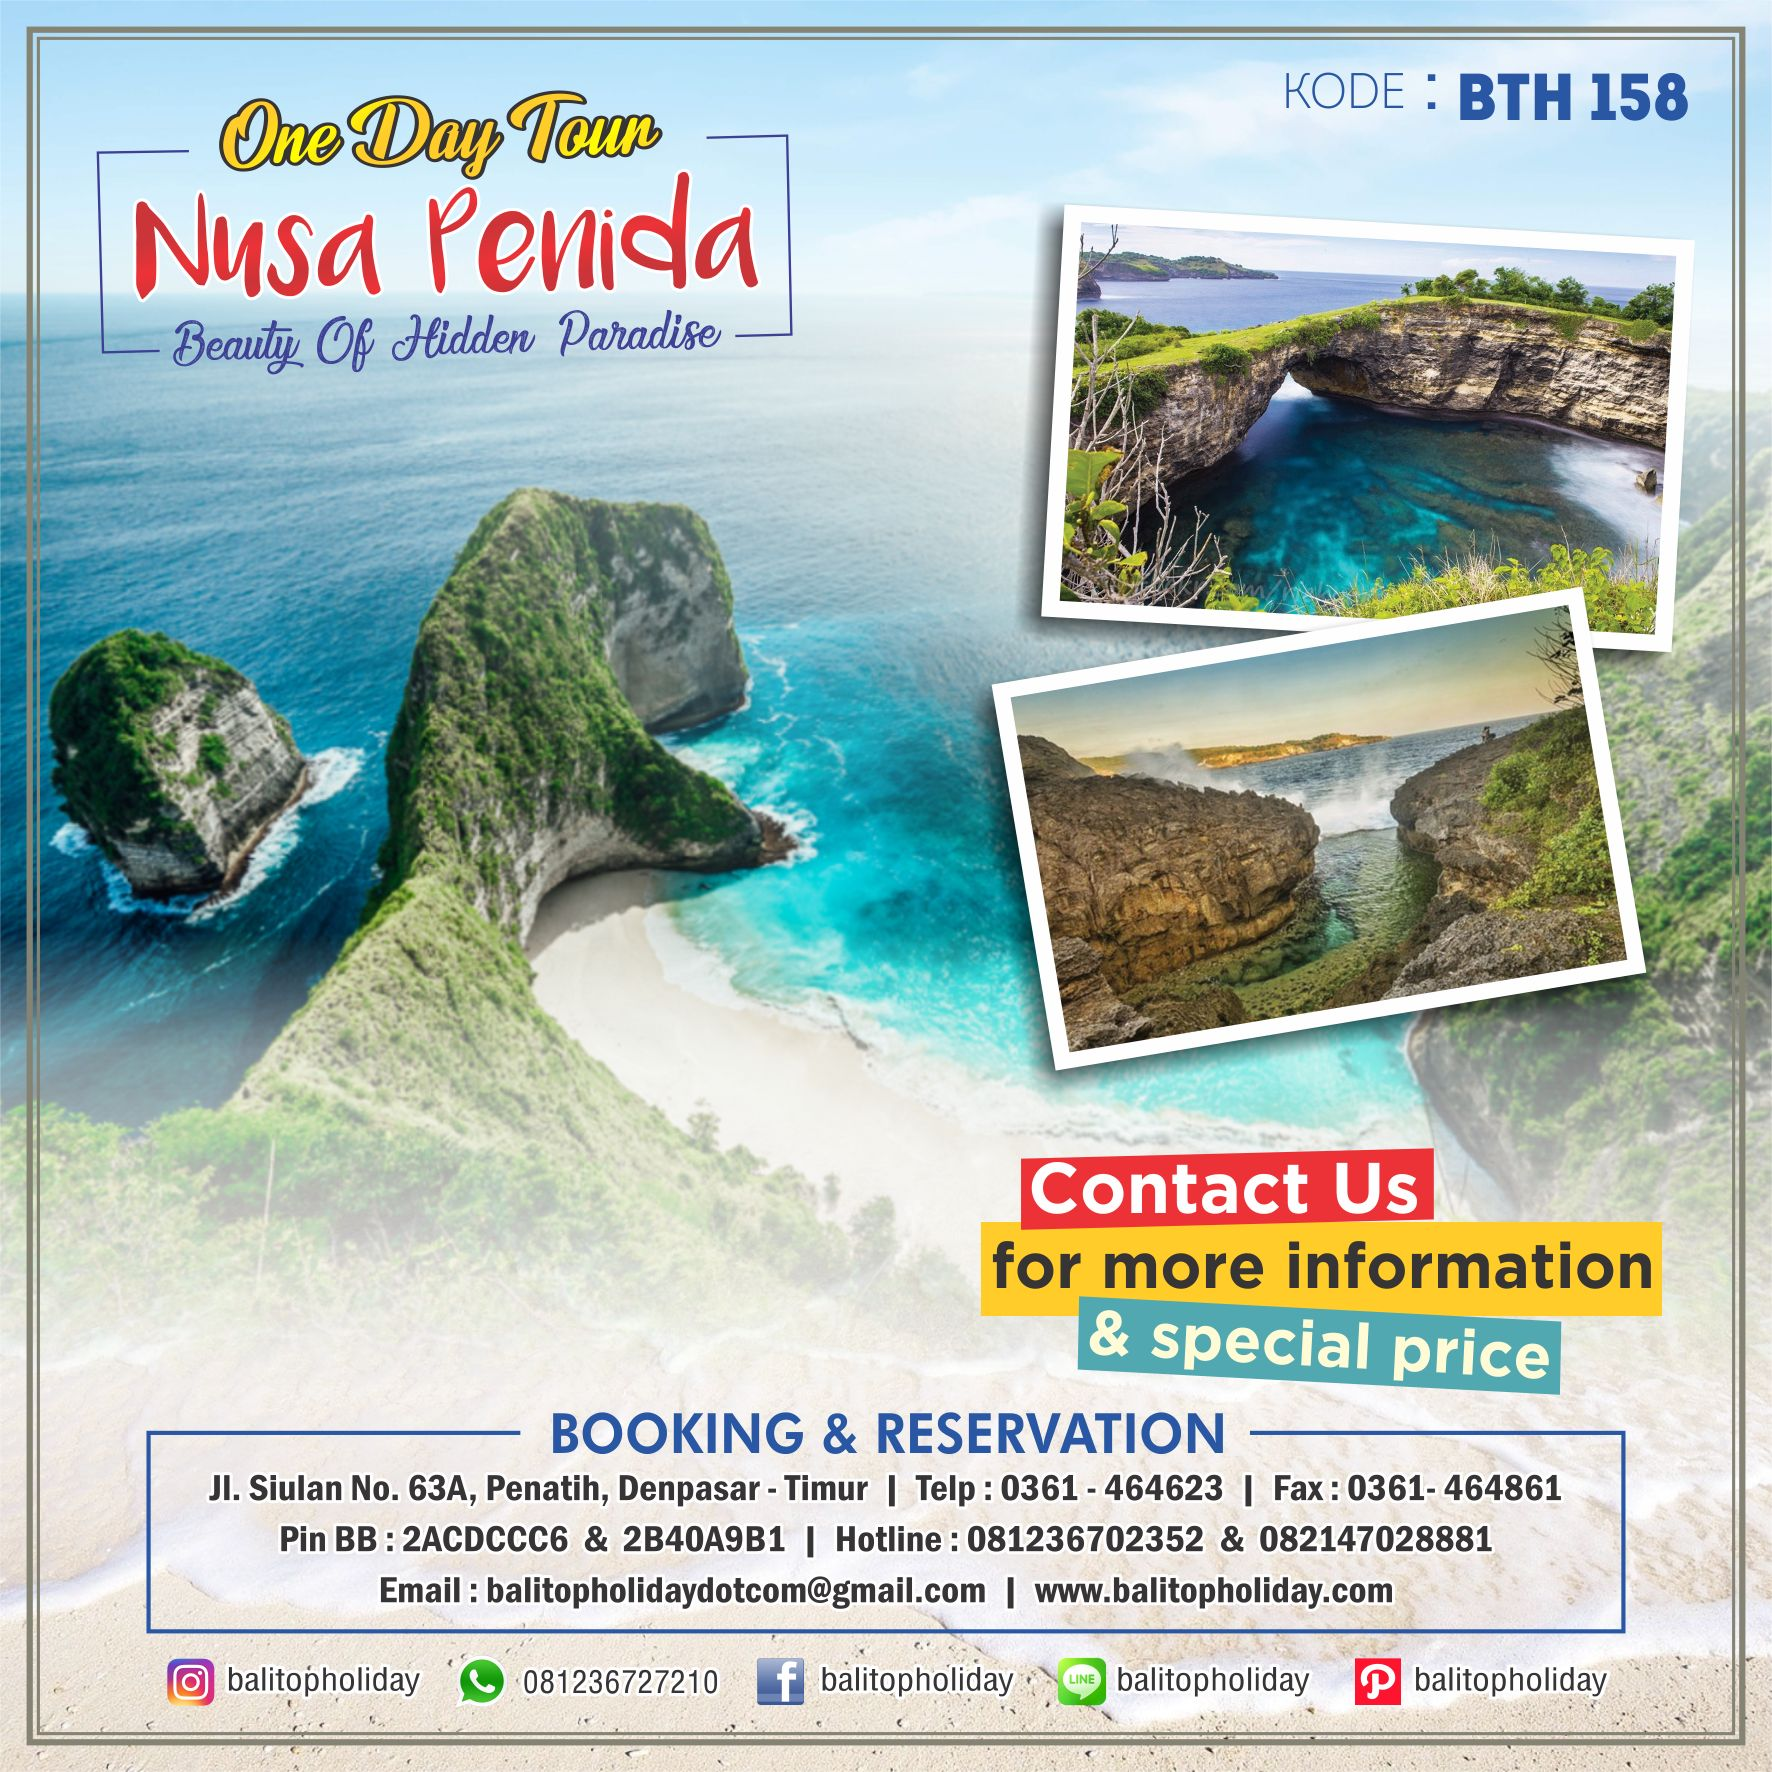 nusa penida one day tour BTH 158